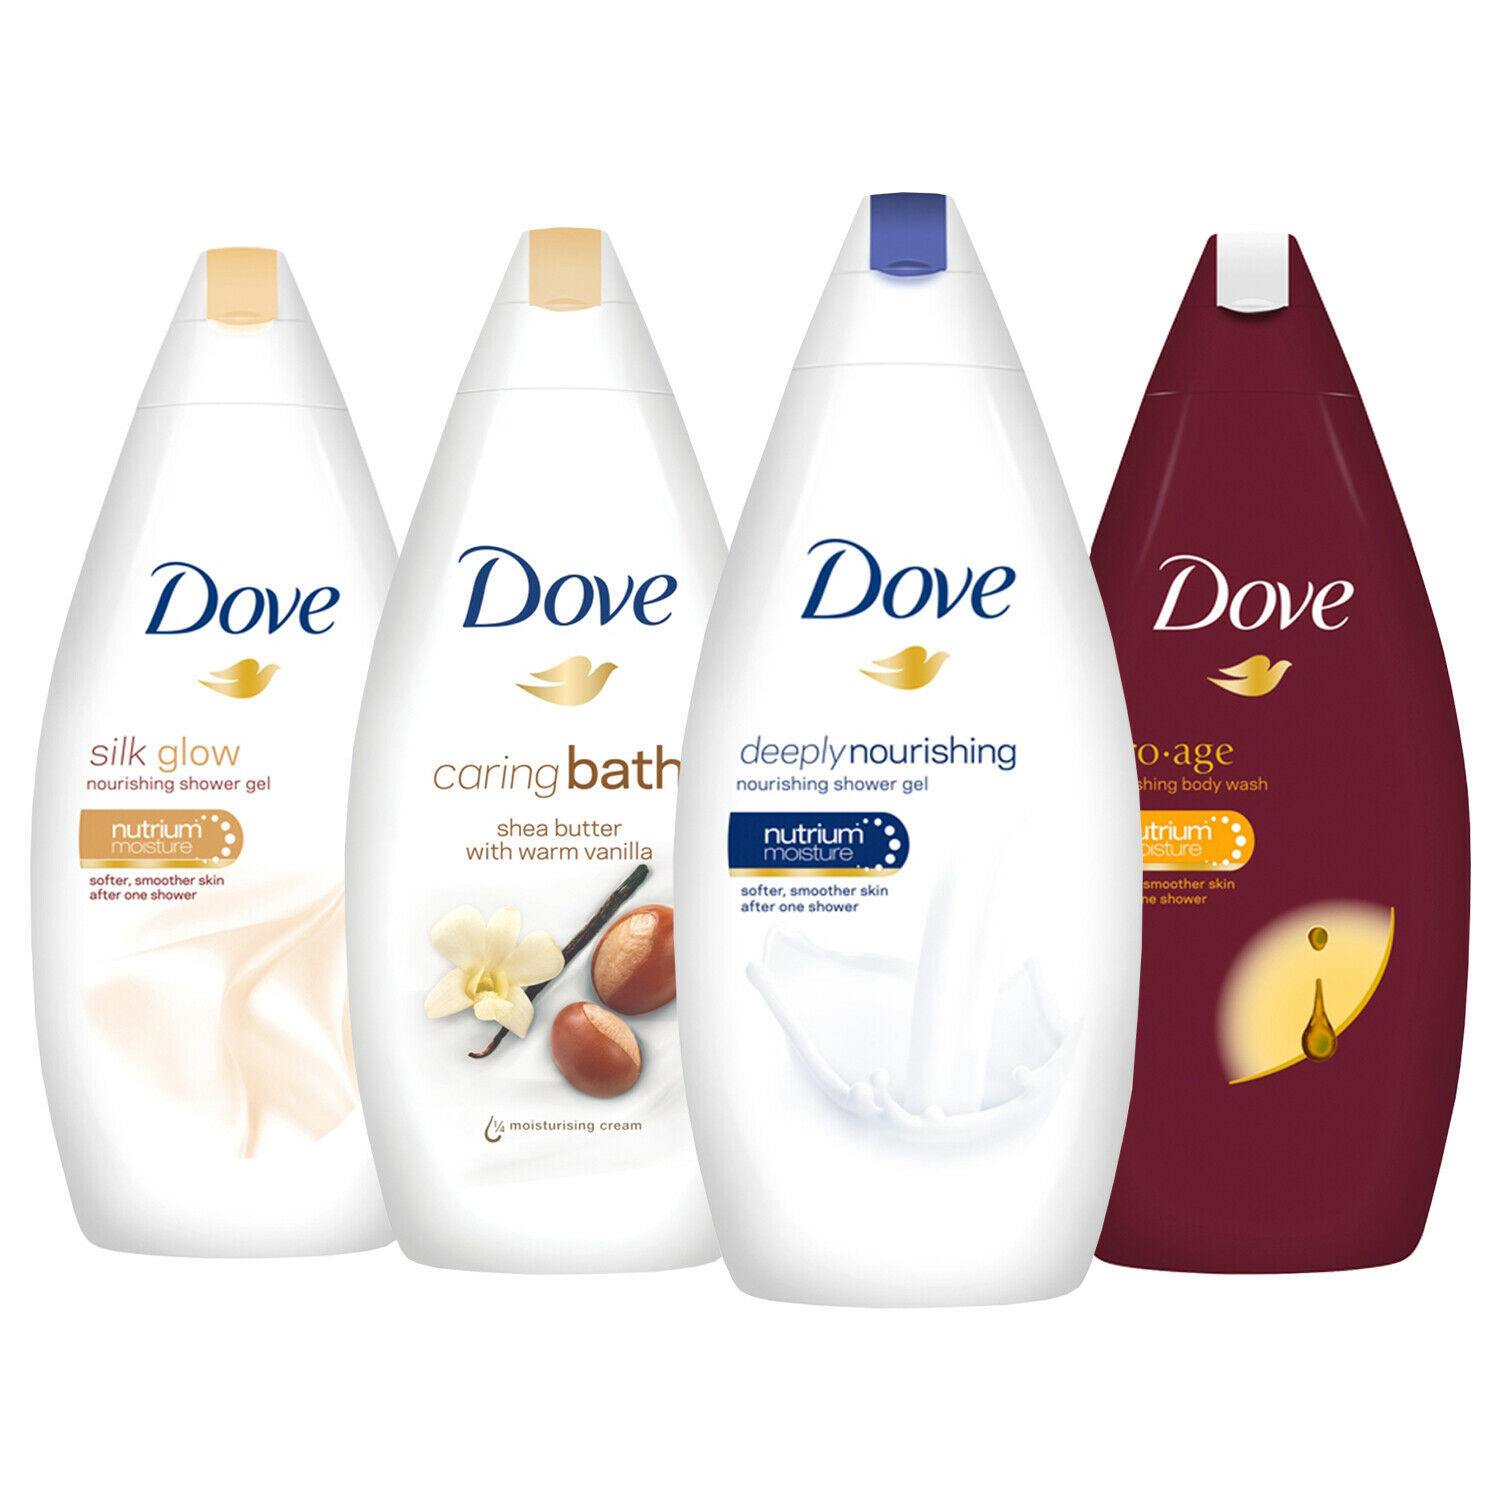 59% OFF Dove Nourishing Body Wash Bath Shower Gel – 6 Packs x 500ml